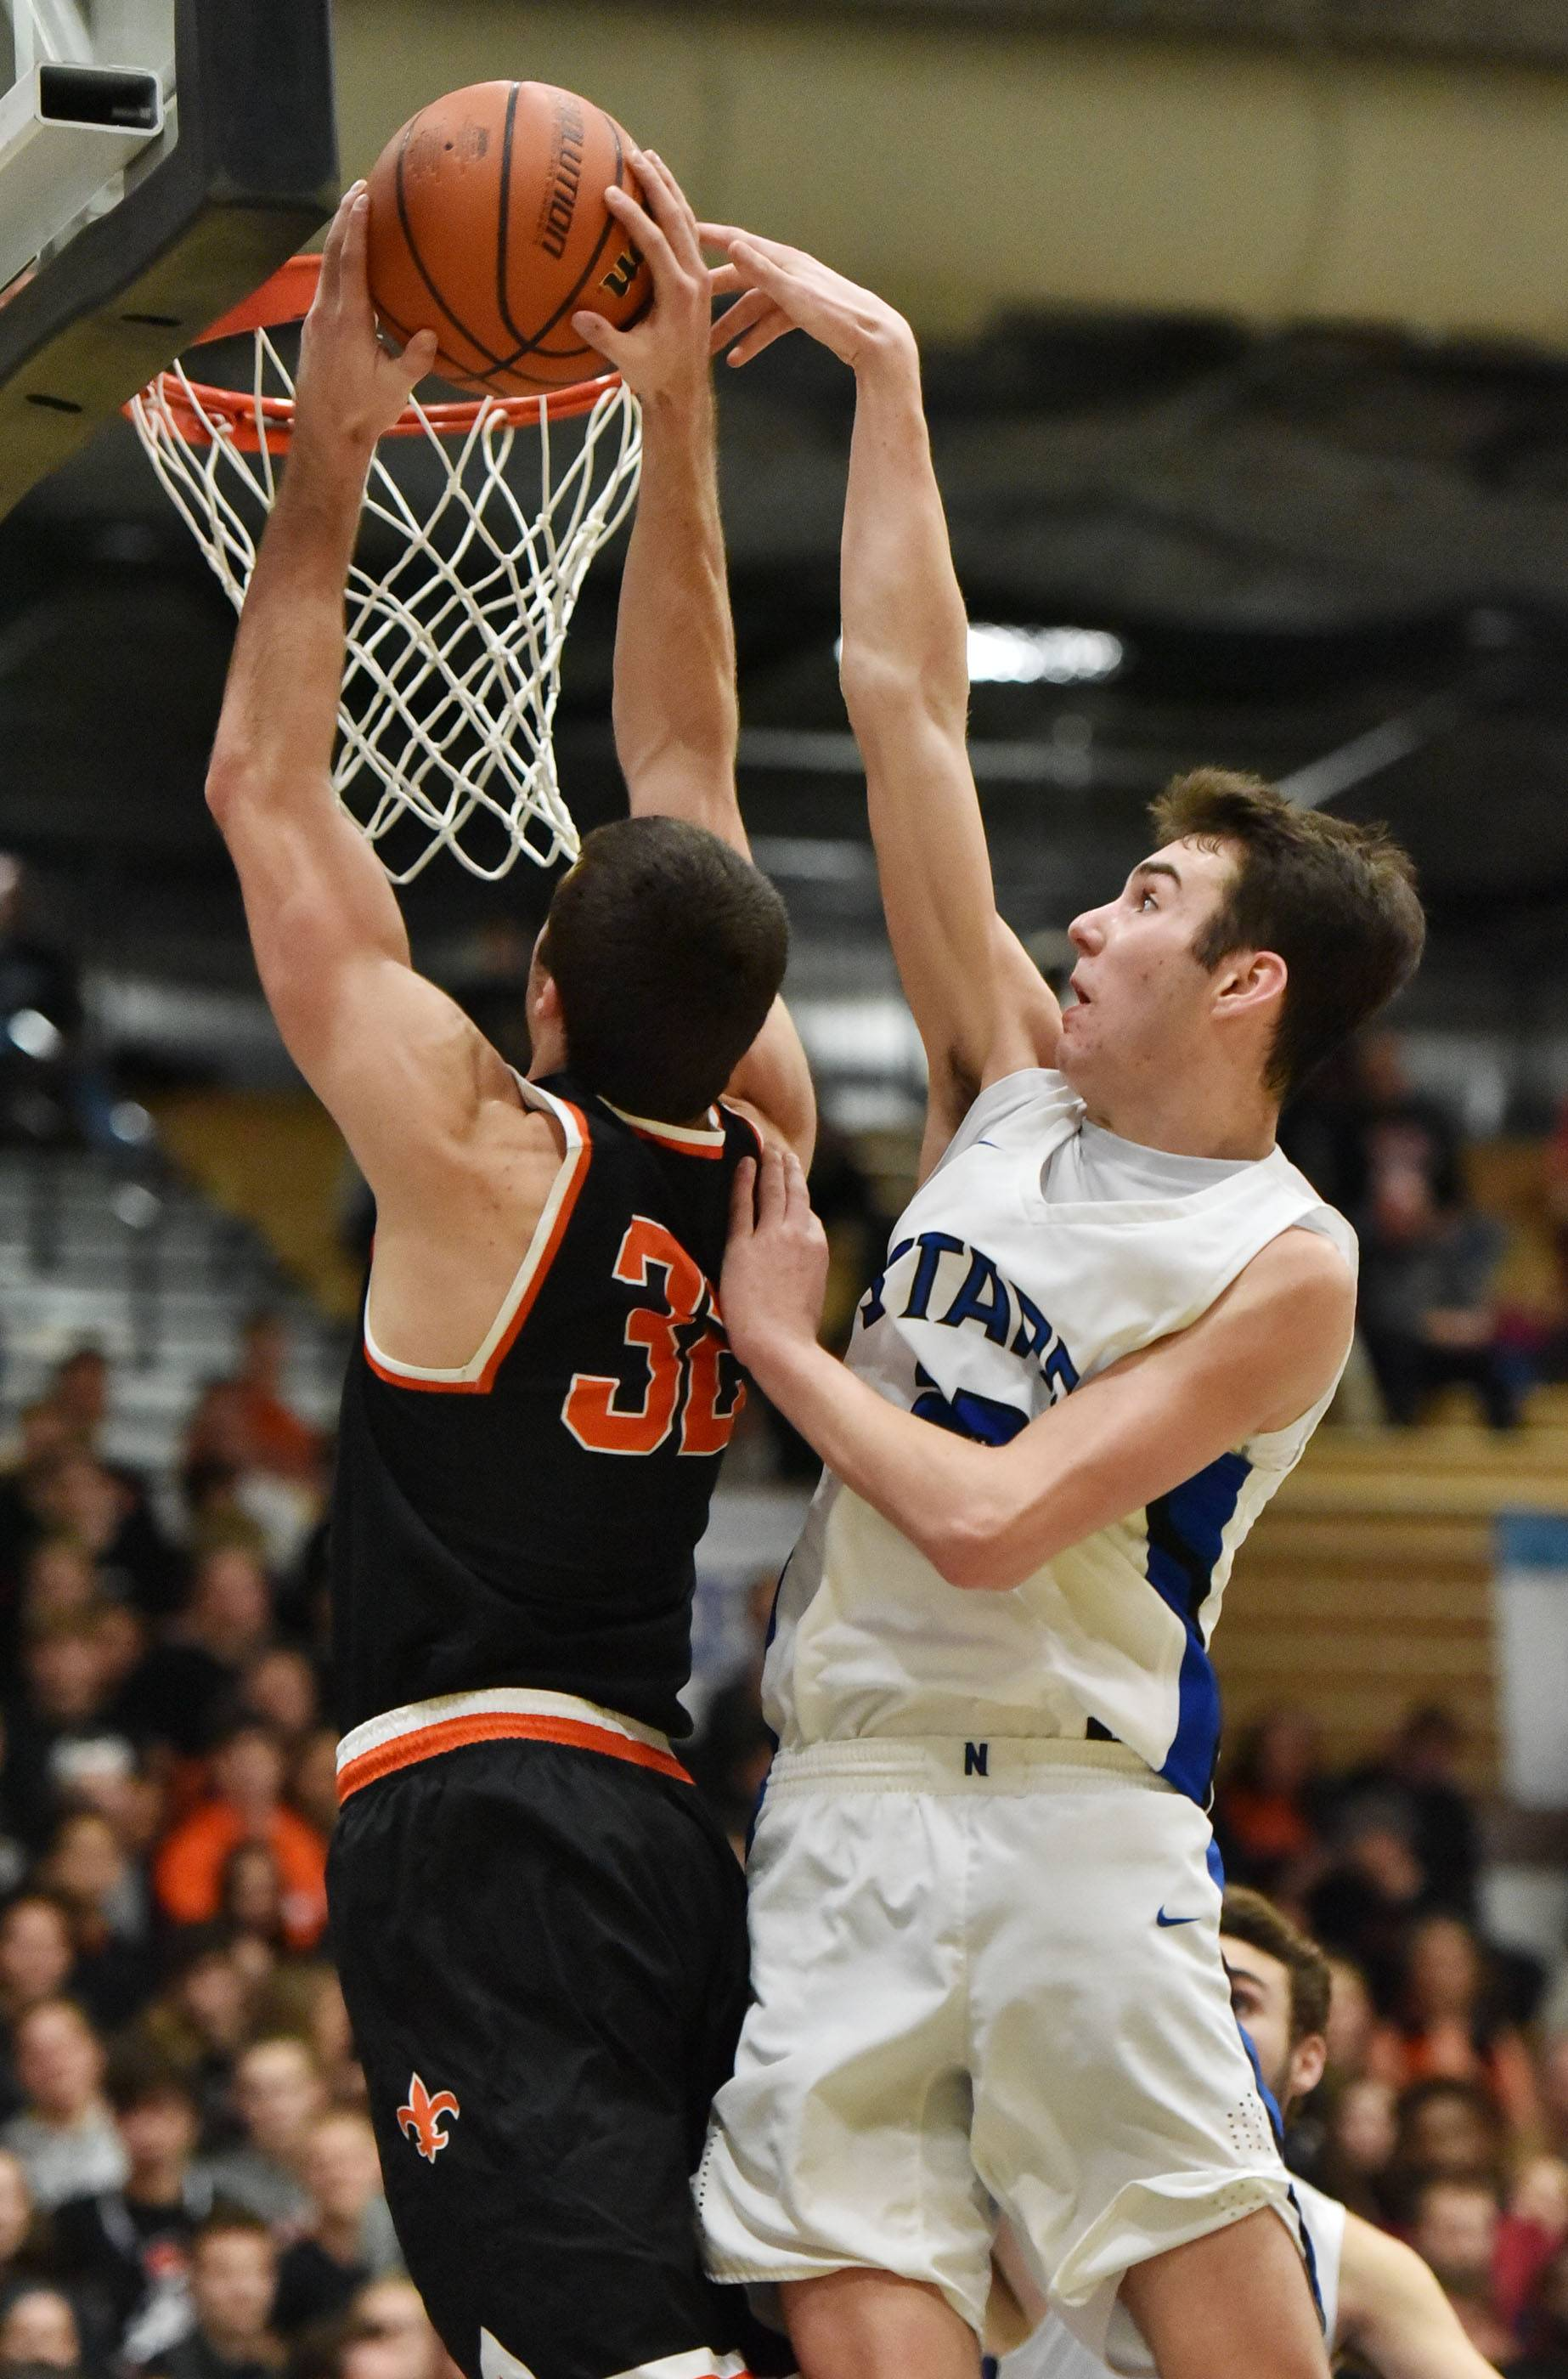 St. Charles North's Cade Callaghan fouls St. Charles East's Justin Hardy Friday at North High School.